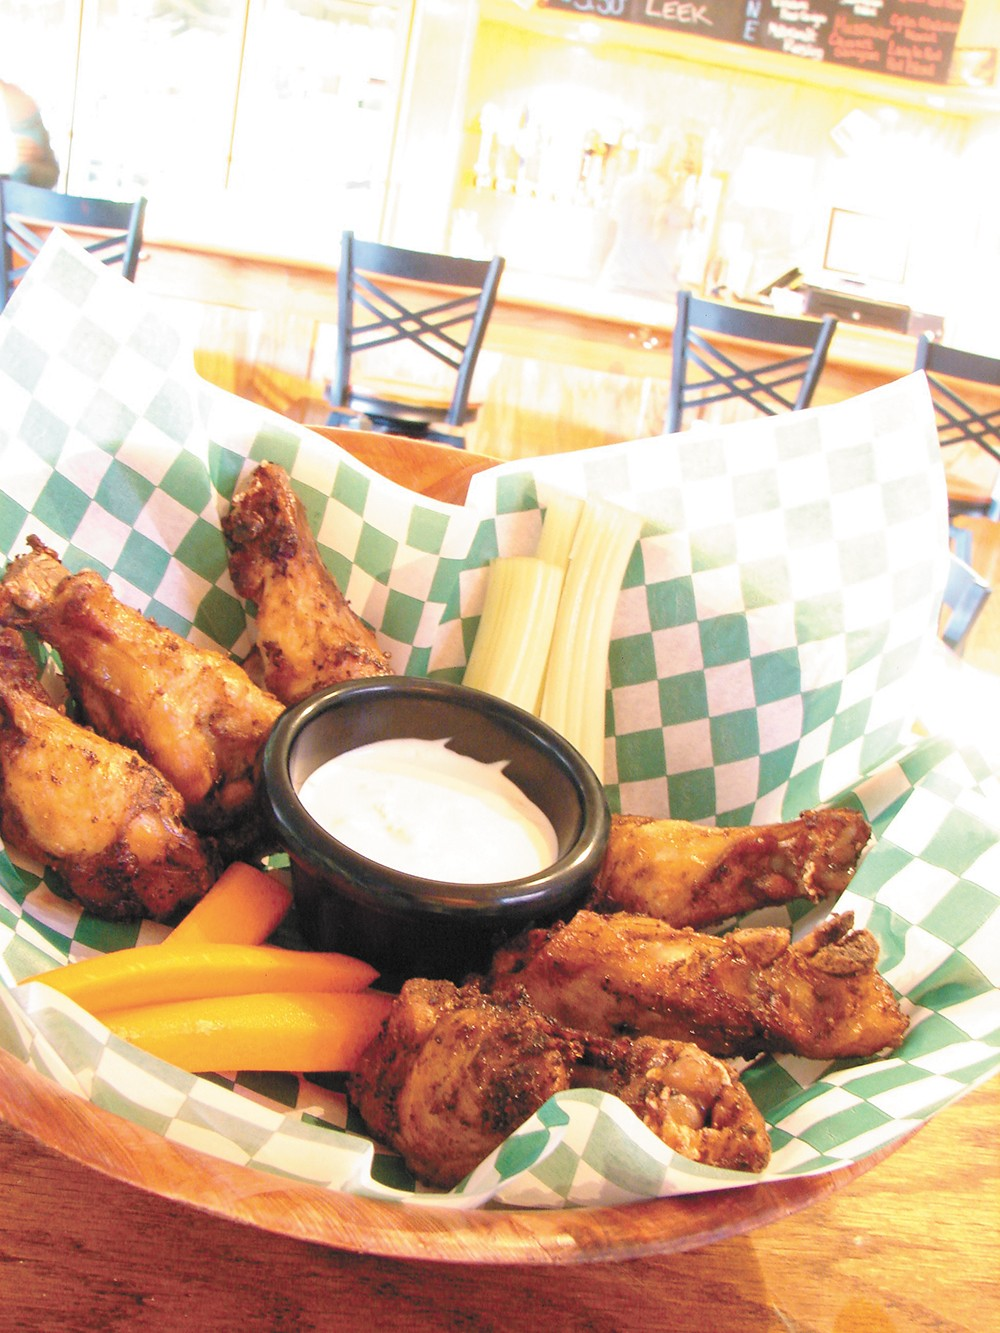 Soon you can pair these hot wings with a Paragon brew. - CARRIE SCOZZARO